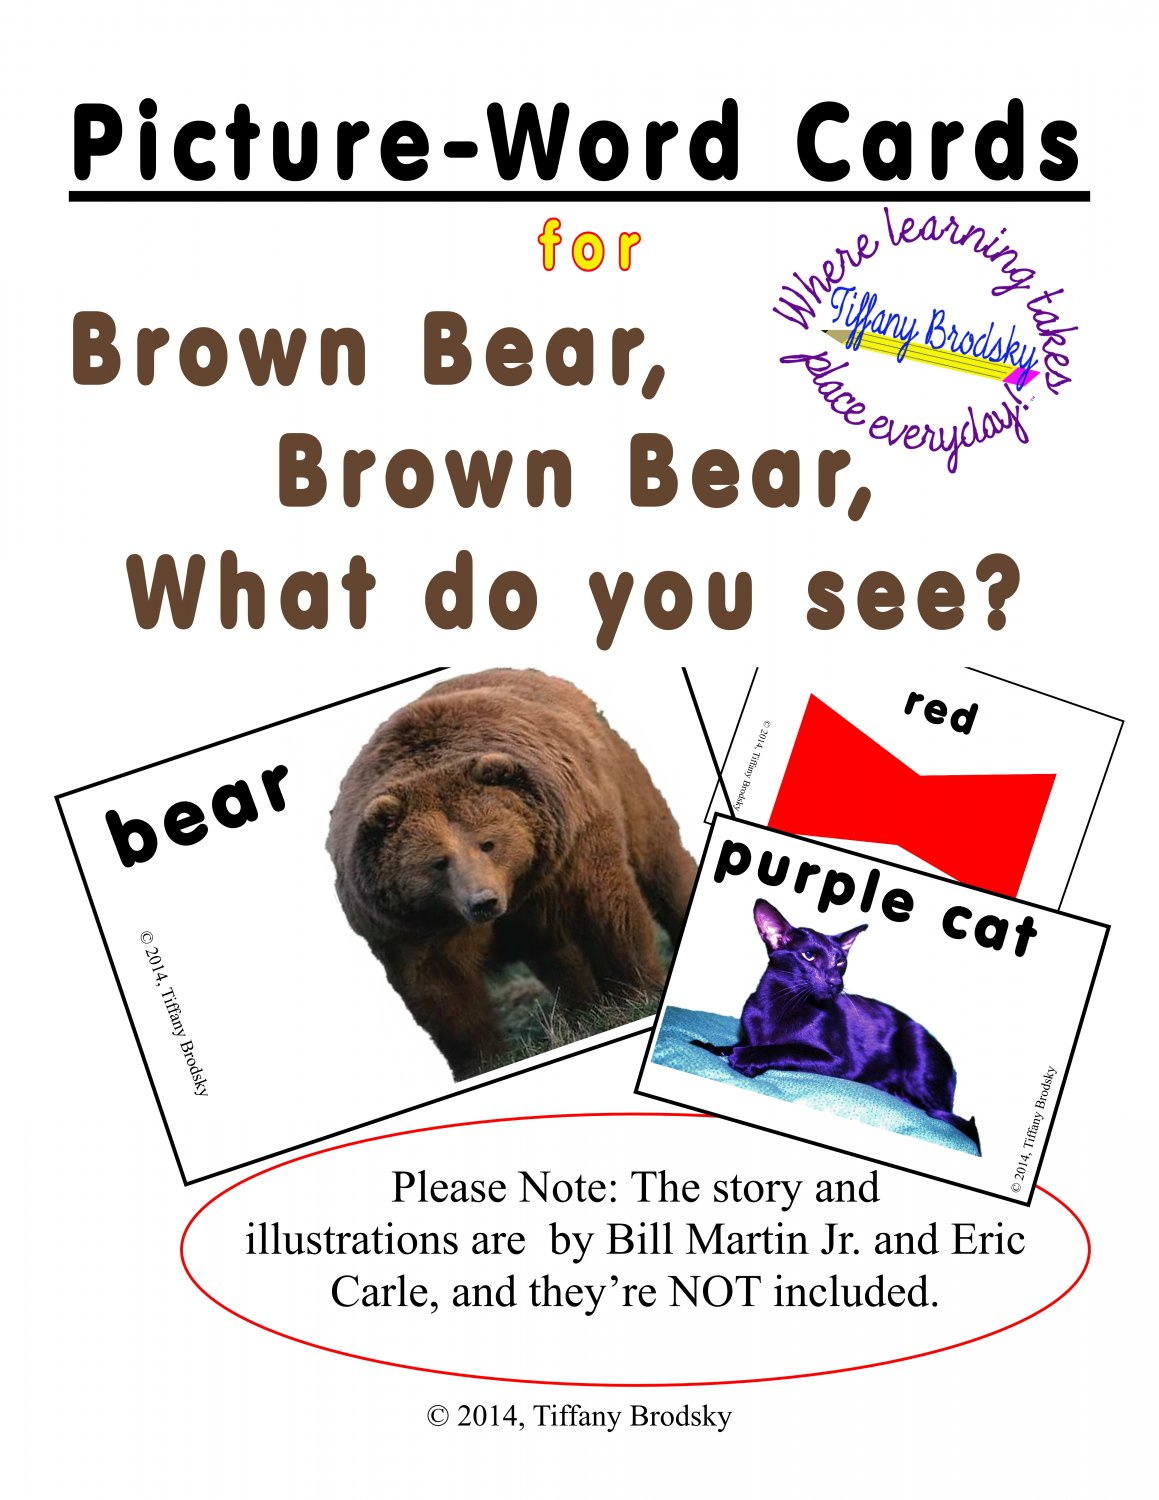 Brown Bear Brown Bear What do You See Animals Brown Bear What do You See Pdf